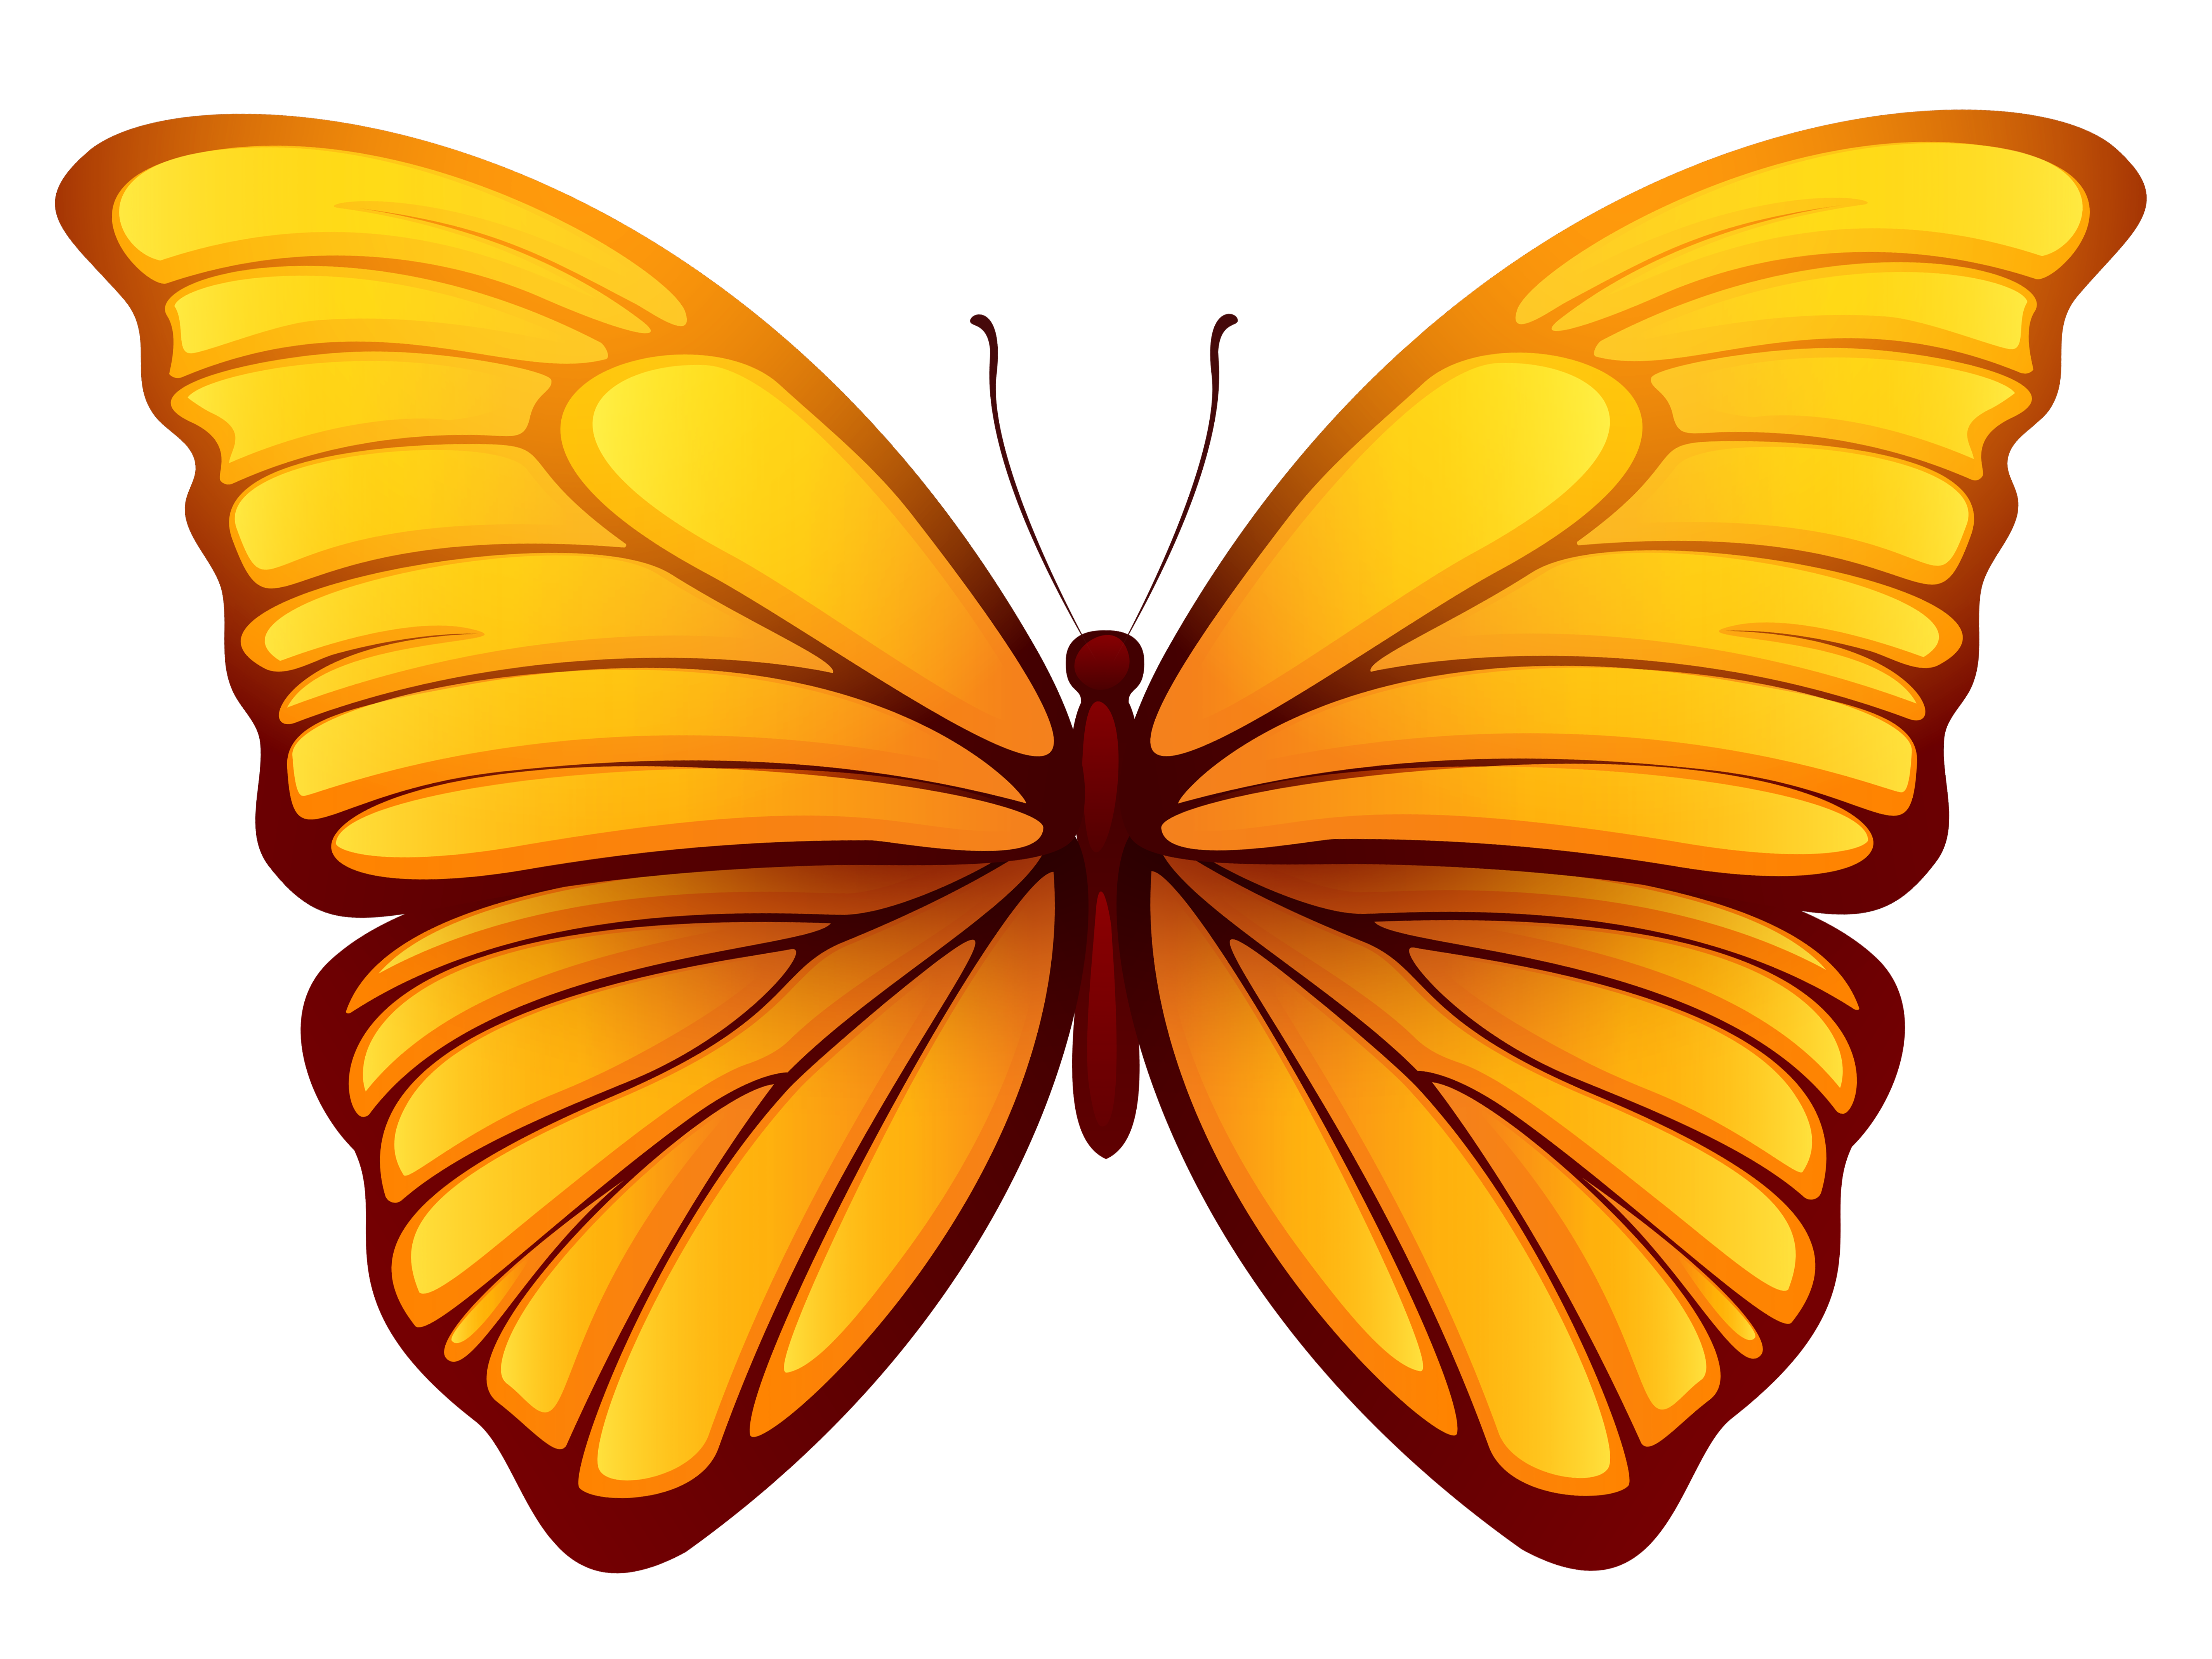 Butterfly png images. Picture gallery yopriceville high